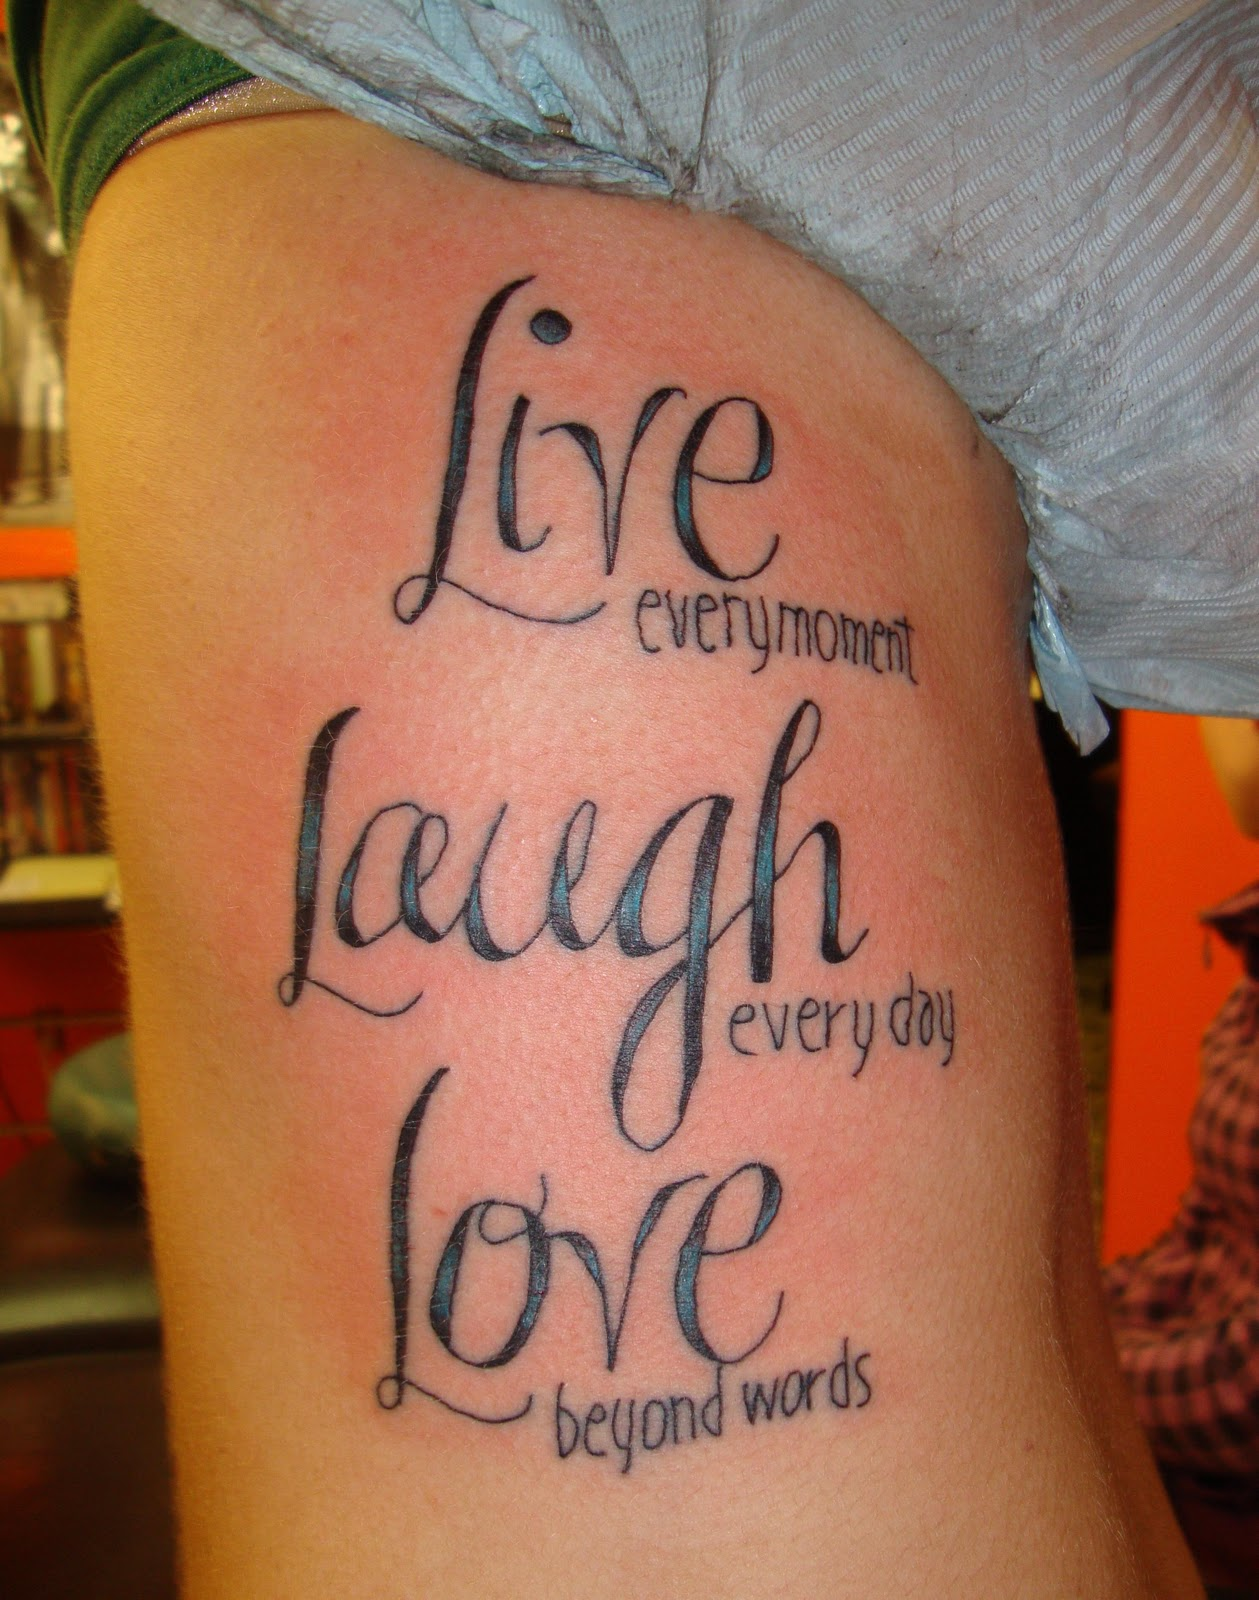 http://2.bp.blogspot.com/-8_FDssQ7fu8/TxT43rwgzjI/AAAAAAAABCc/u-x27ln4to0/s1600/tattoo+designs+for+girls_live_laugh_love_rib_tattoo.JPG